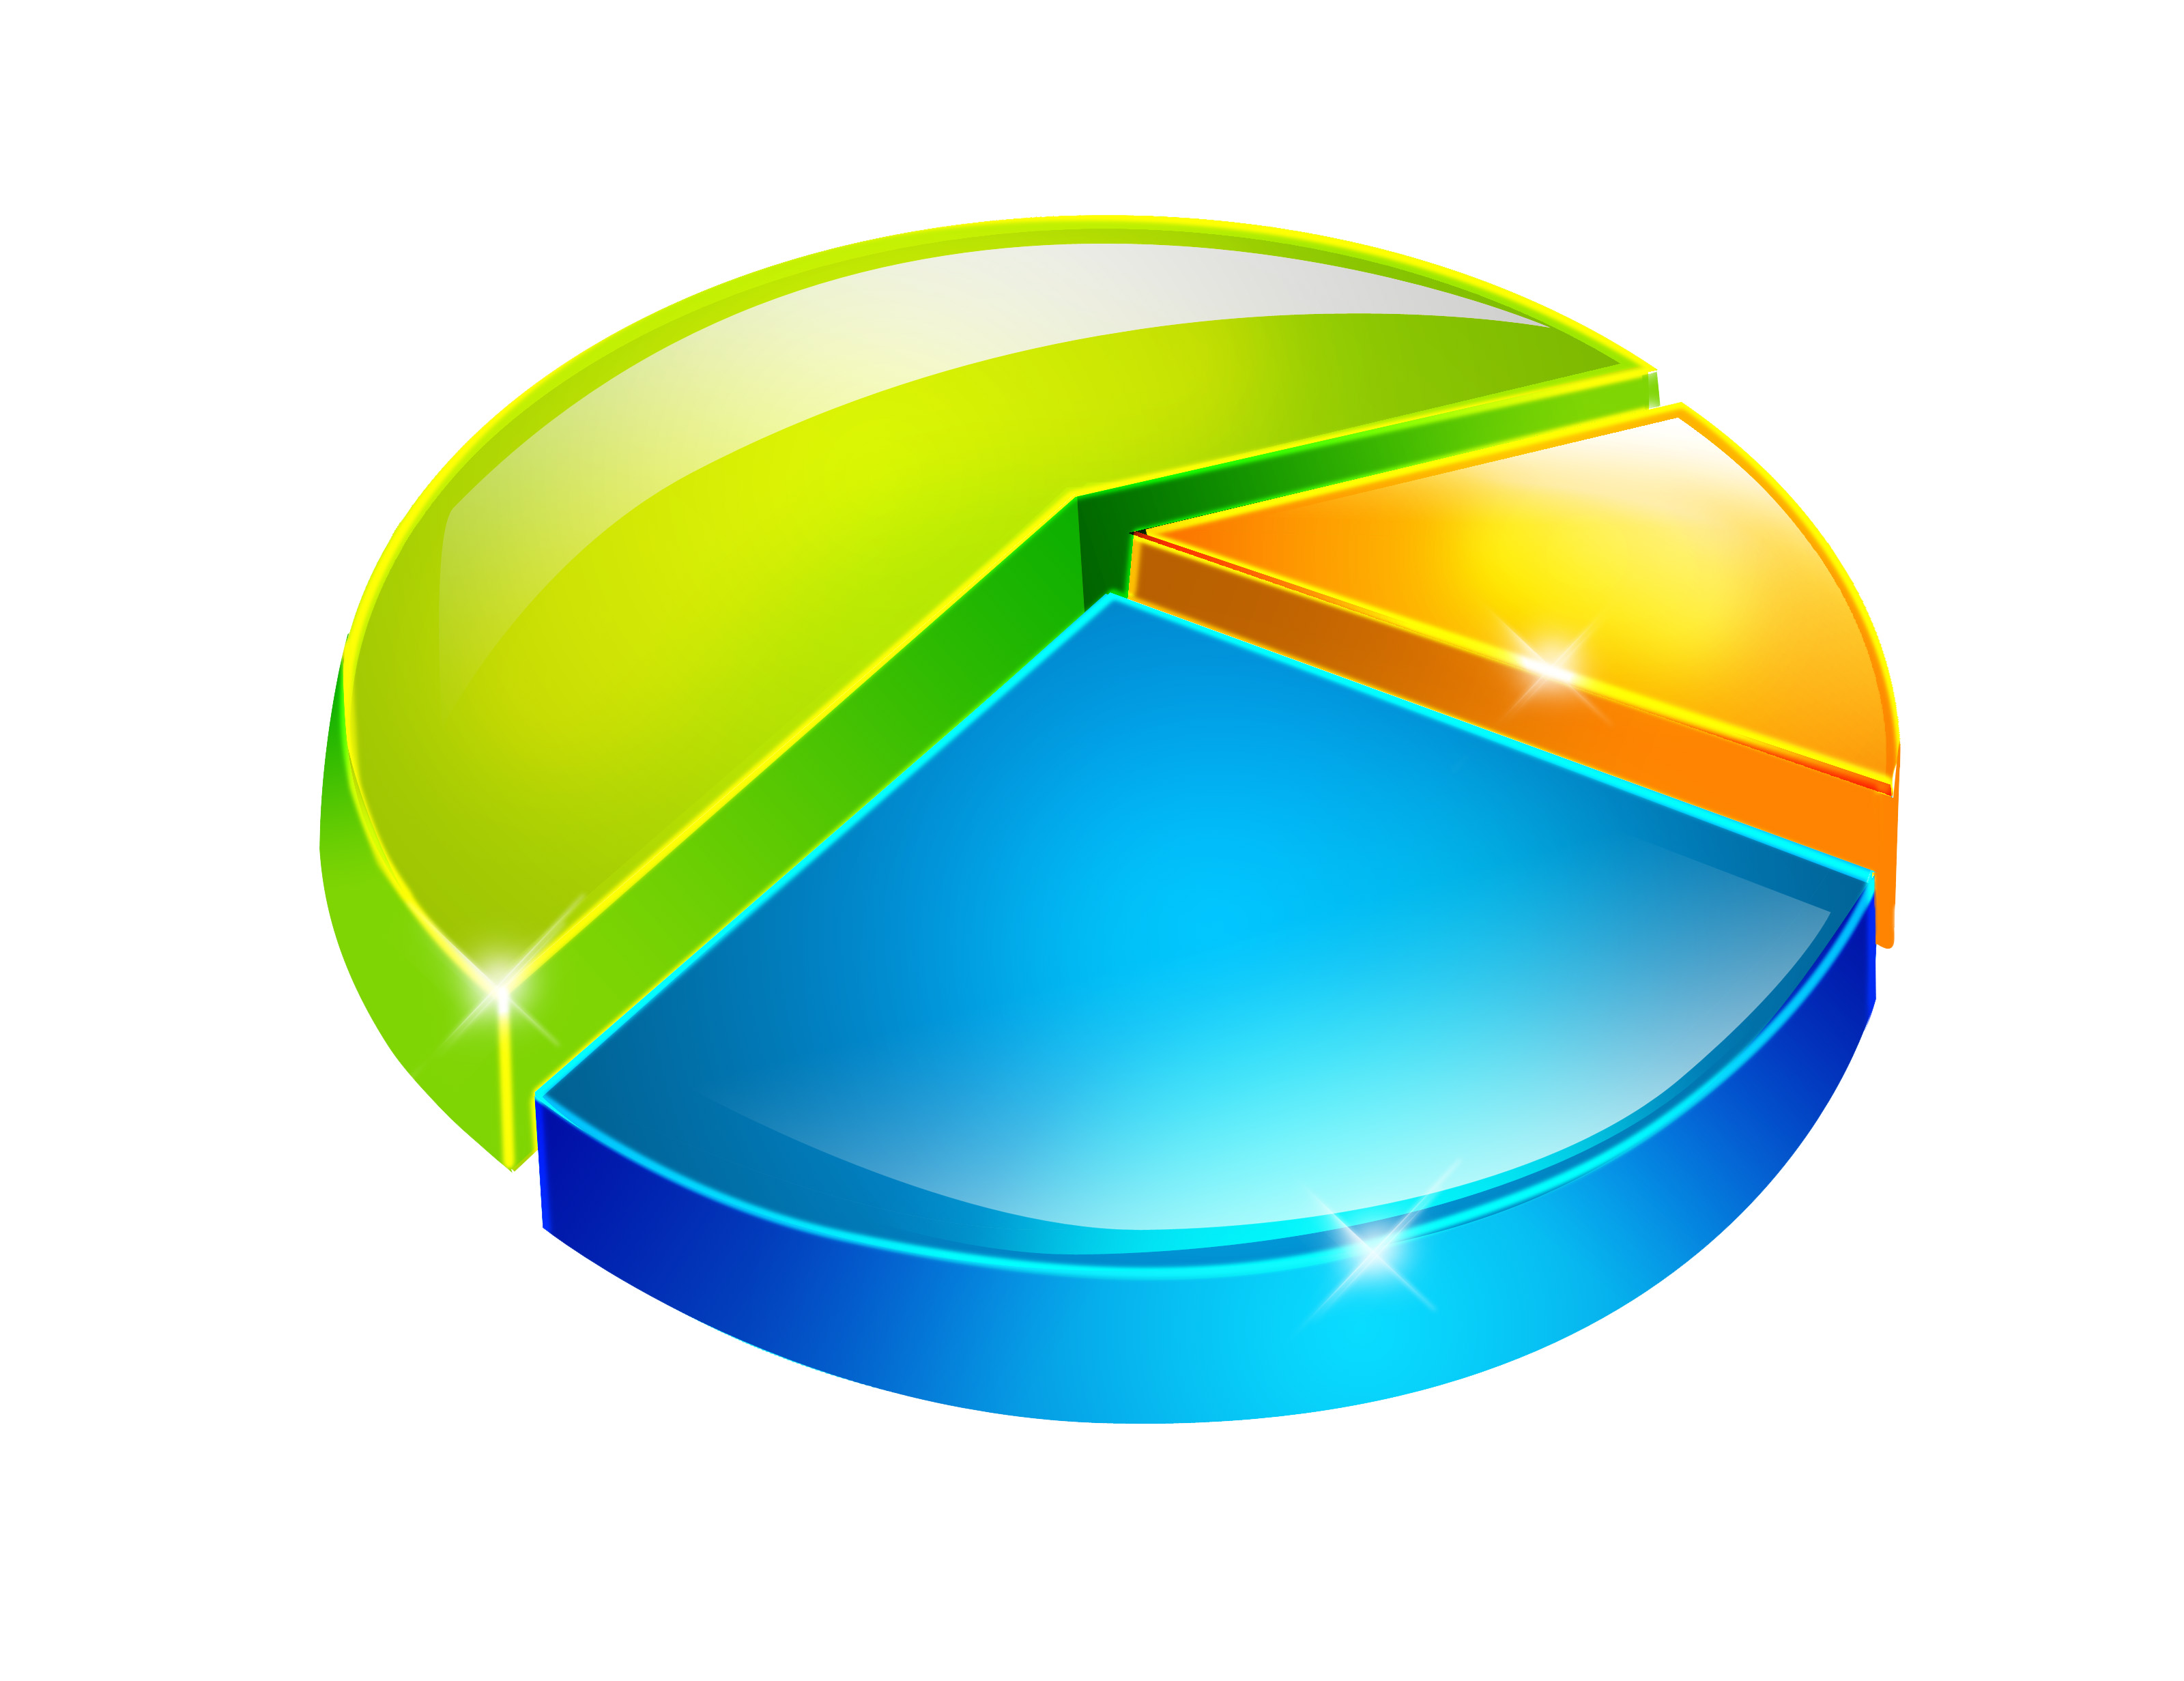 Pie Chart - Clipart library-Pie Chart - Clipart library-11